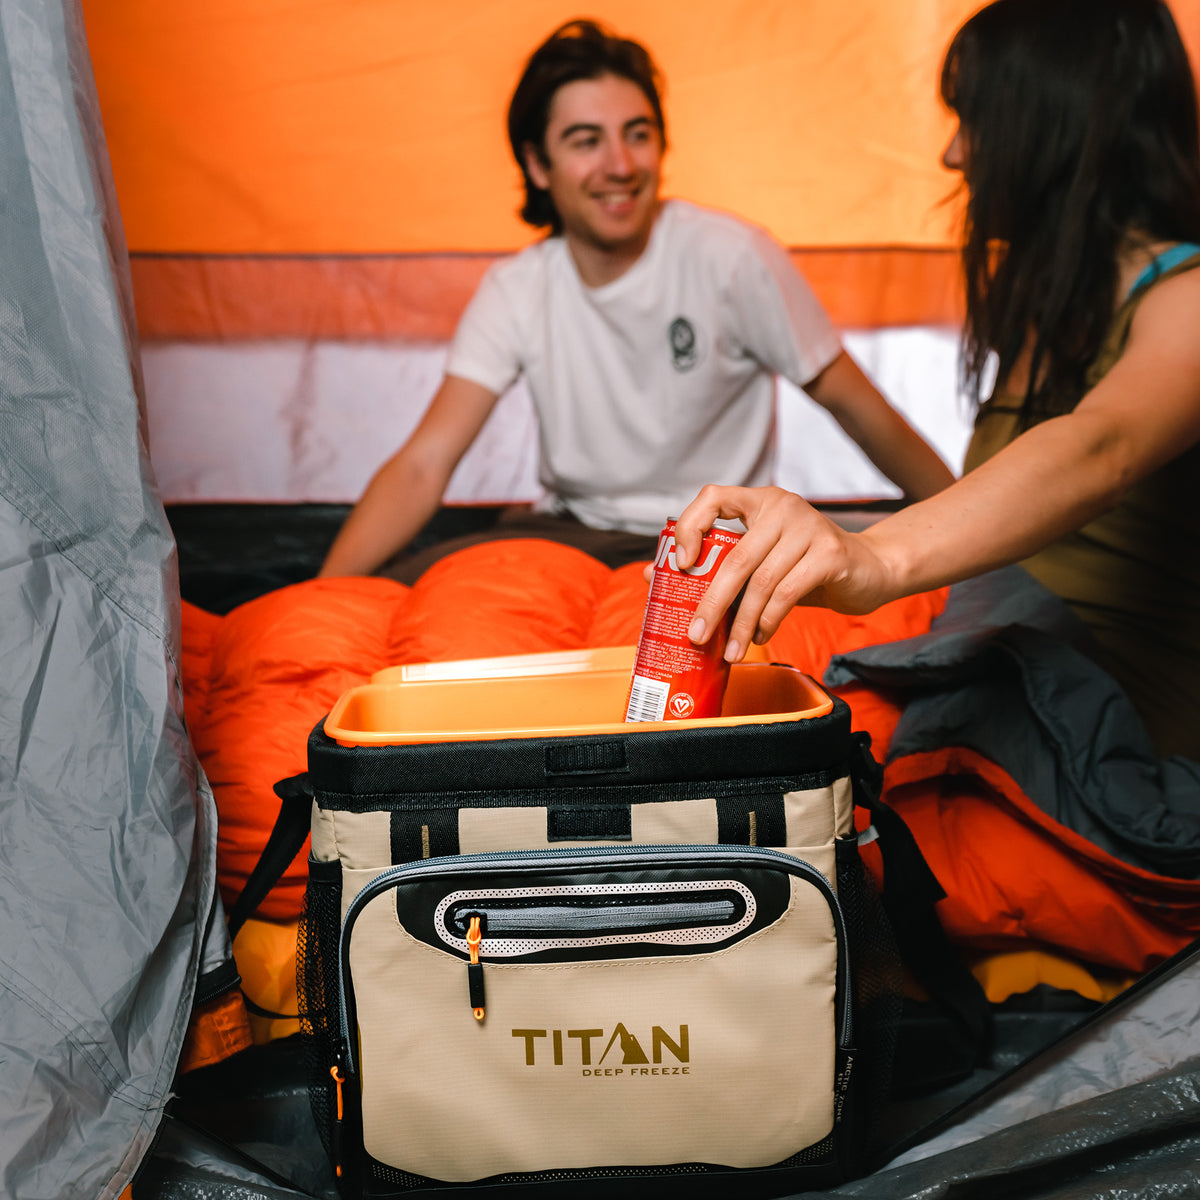 Titan Deep Freeze® 16 Can Zipperless™ HardBody® Cooler - Moss - Lifestyle, having a drink after setting up camp